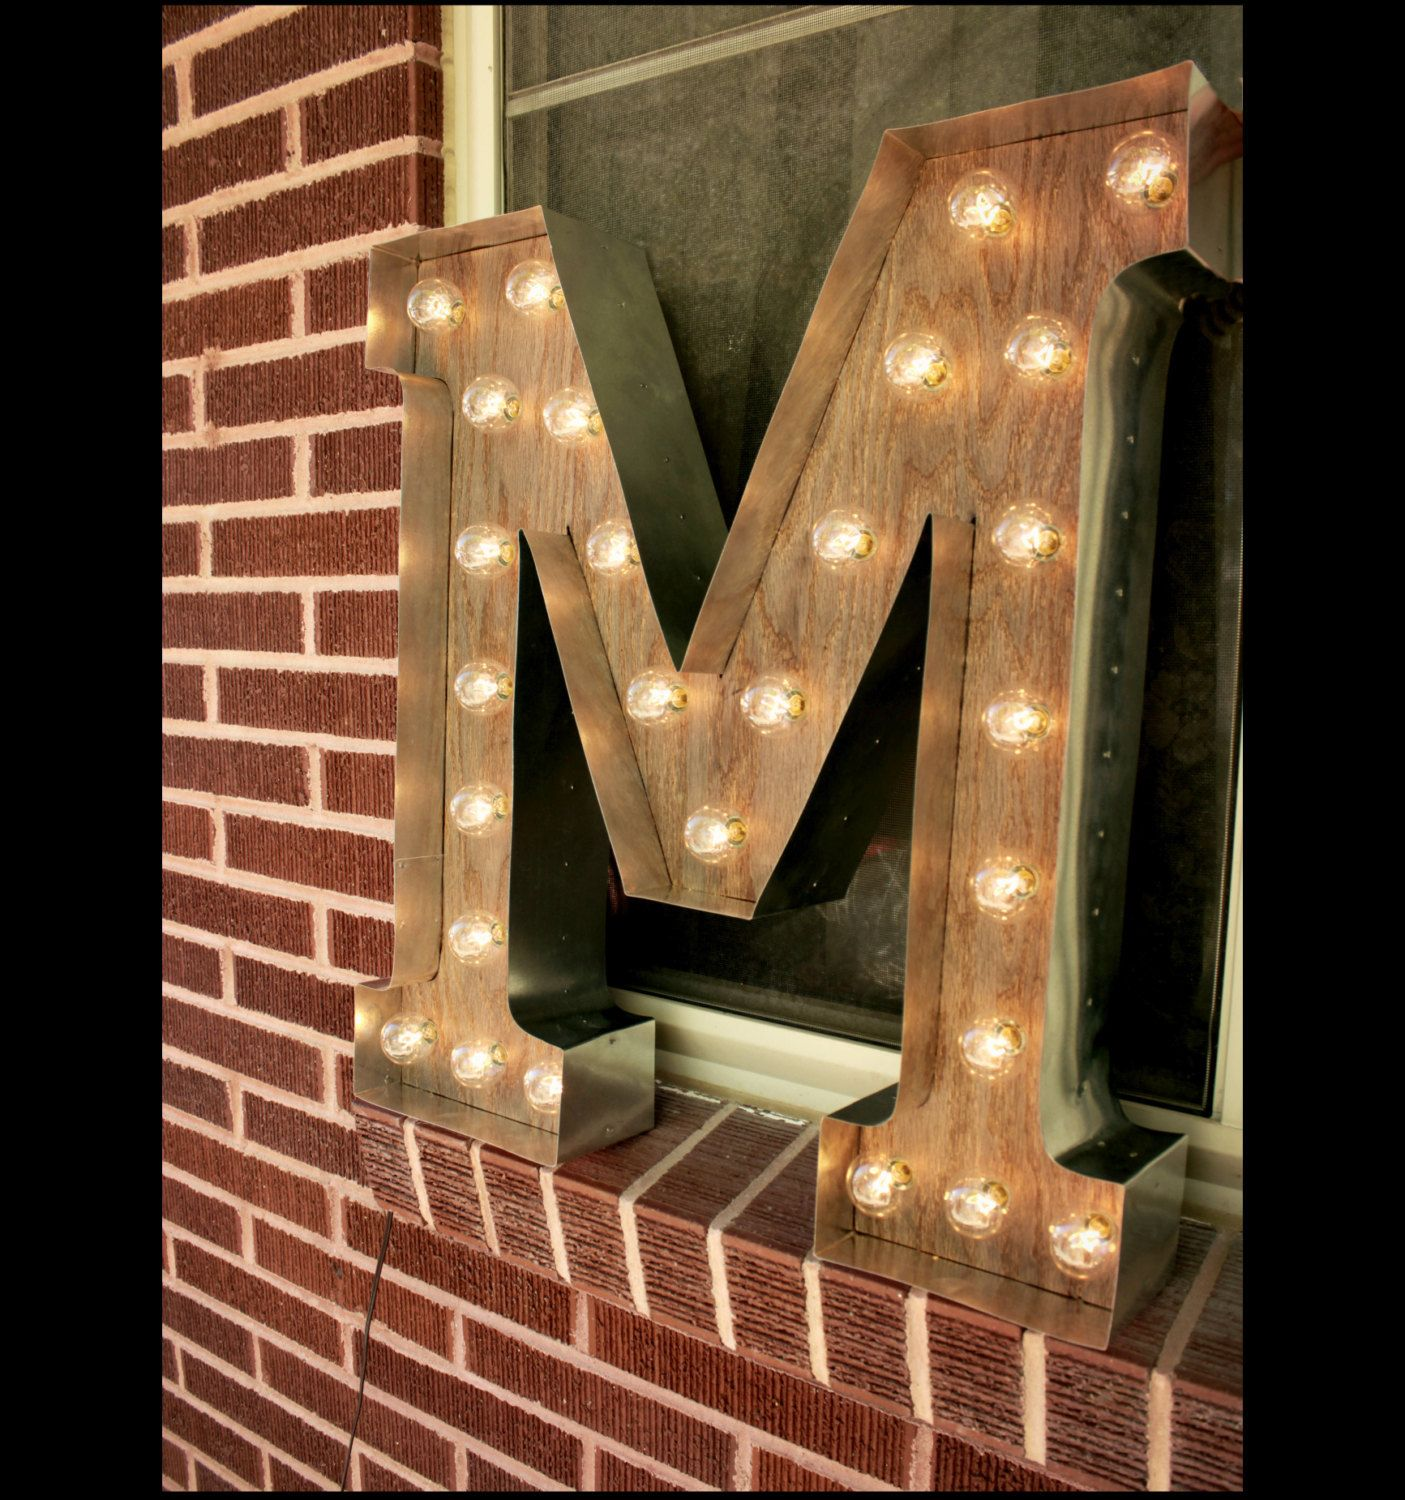 Light Up Letter M Sign Rustic Industrial Marquee Lighting W Metal Distressed Wood Vintage Light Bulb Lett Light Up Letters Rustic Chandelier Rustic Decor